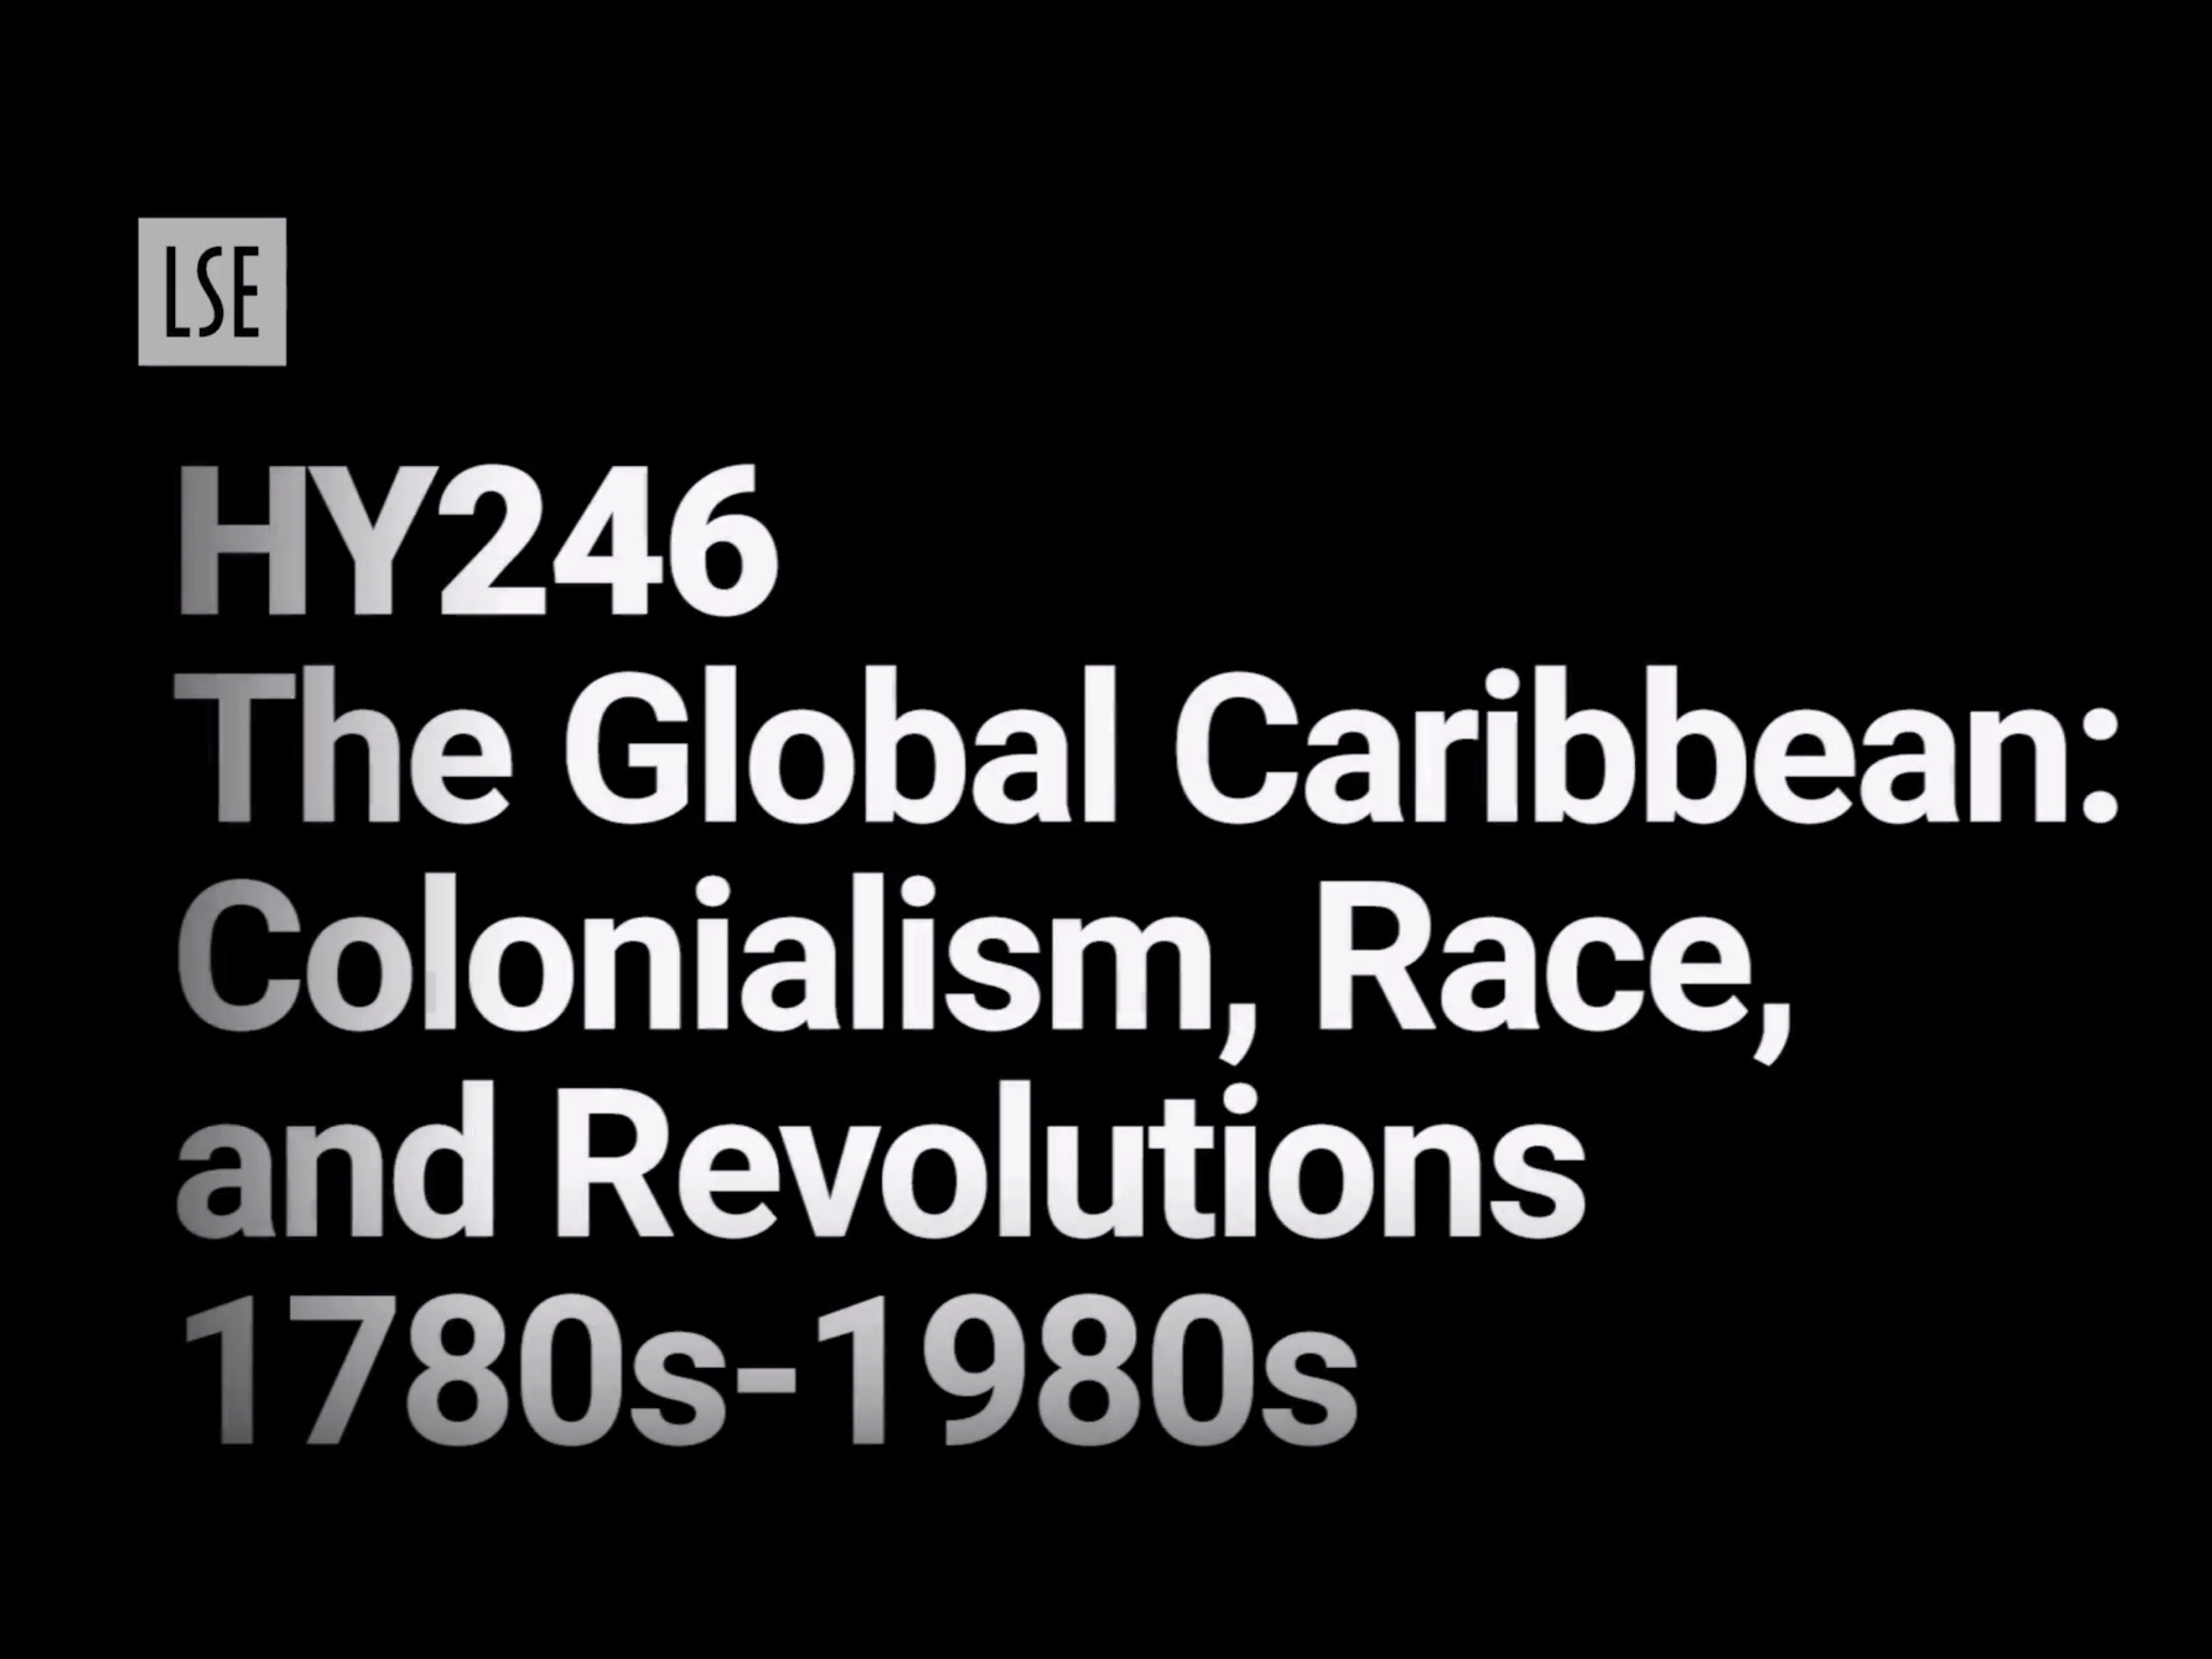 HY246: The Global Caribbean: Colonialism, Race, and Revolutions 1780s-1980s